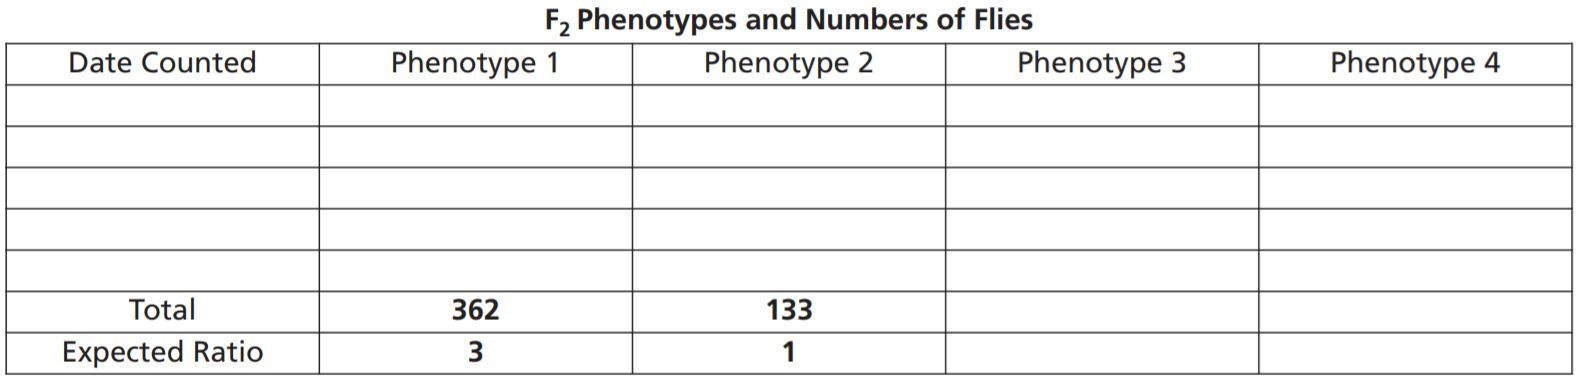 F<sub>2</sub> Phenotypes and Numbers of Flies